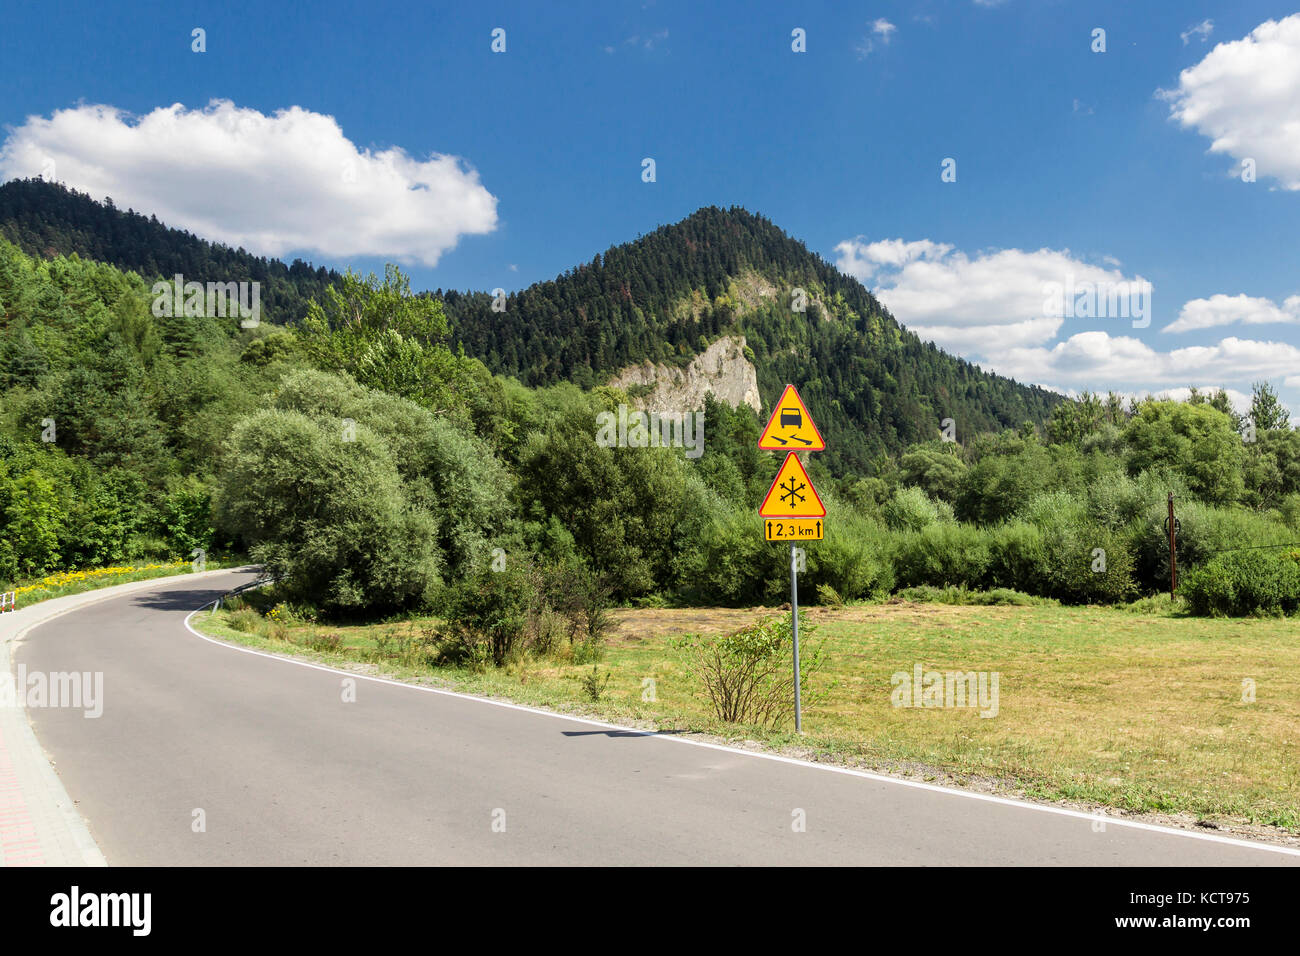 Landscapes of Poland. Road in Polish mountains - Pieniny. - Stock Image